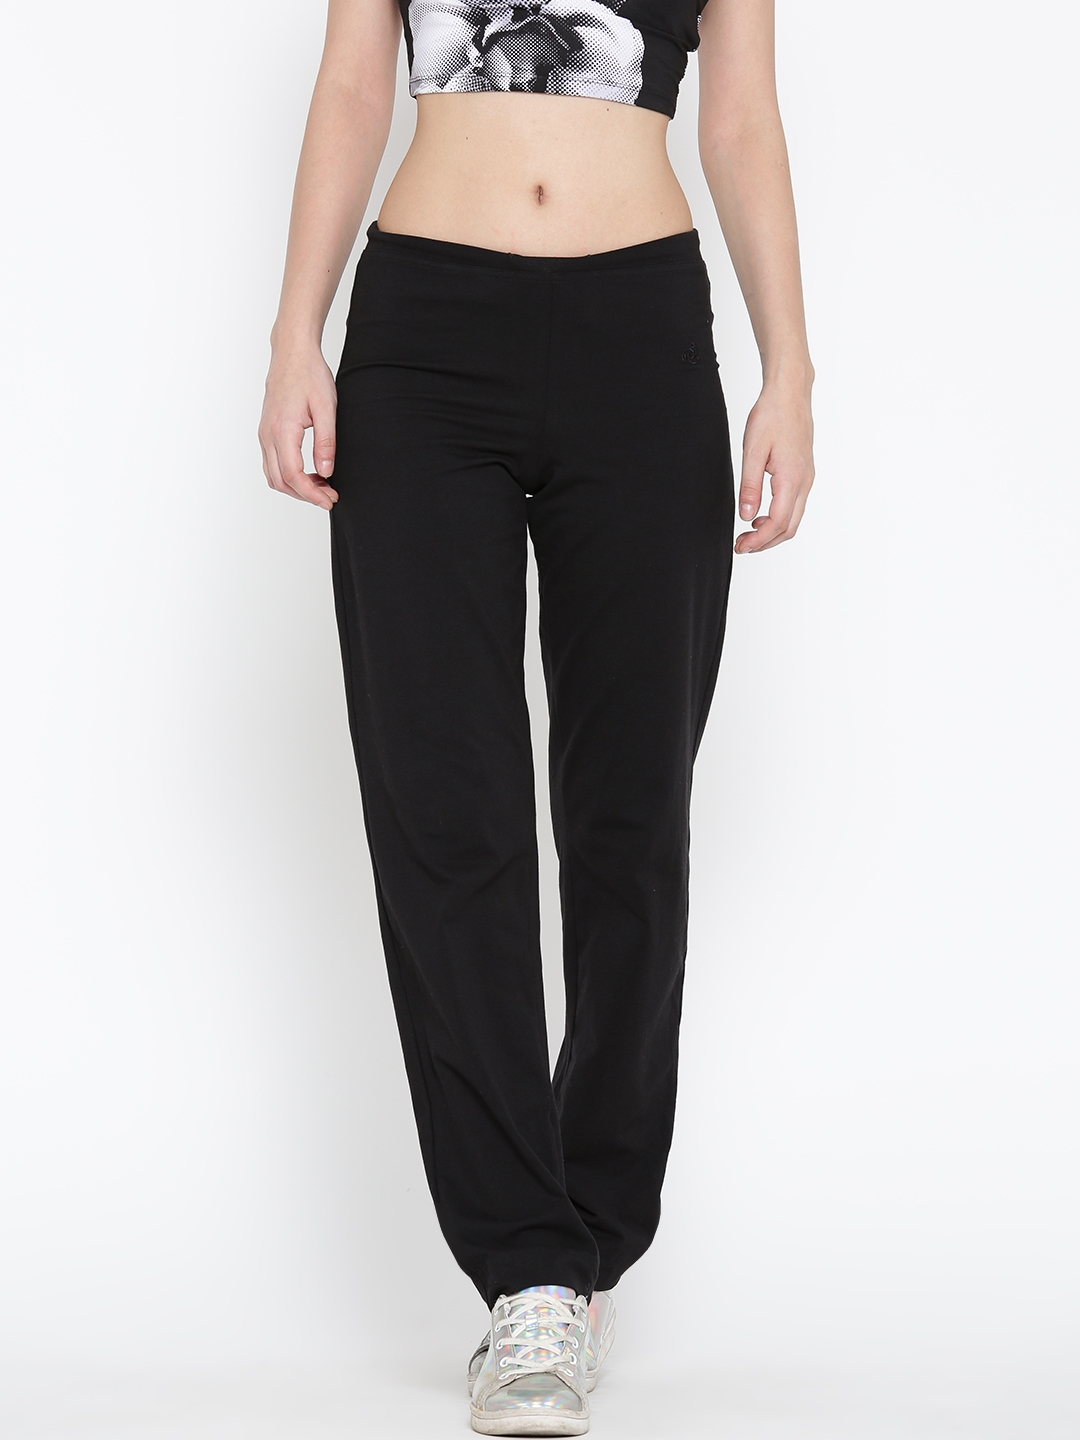 Brilliant Women39s Leisure Lounge Pants Black  Mossimo Product Details Page